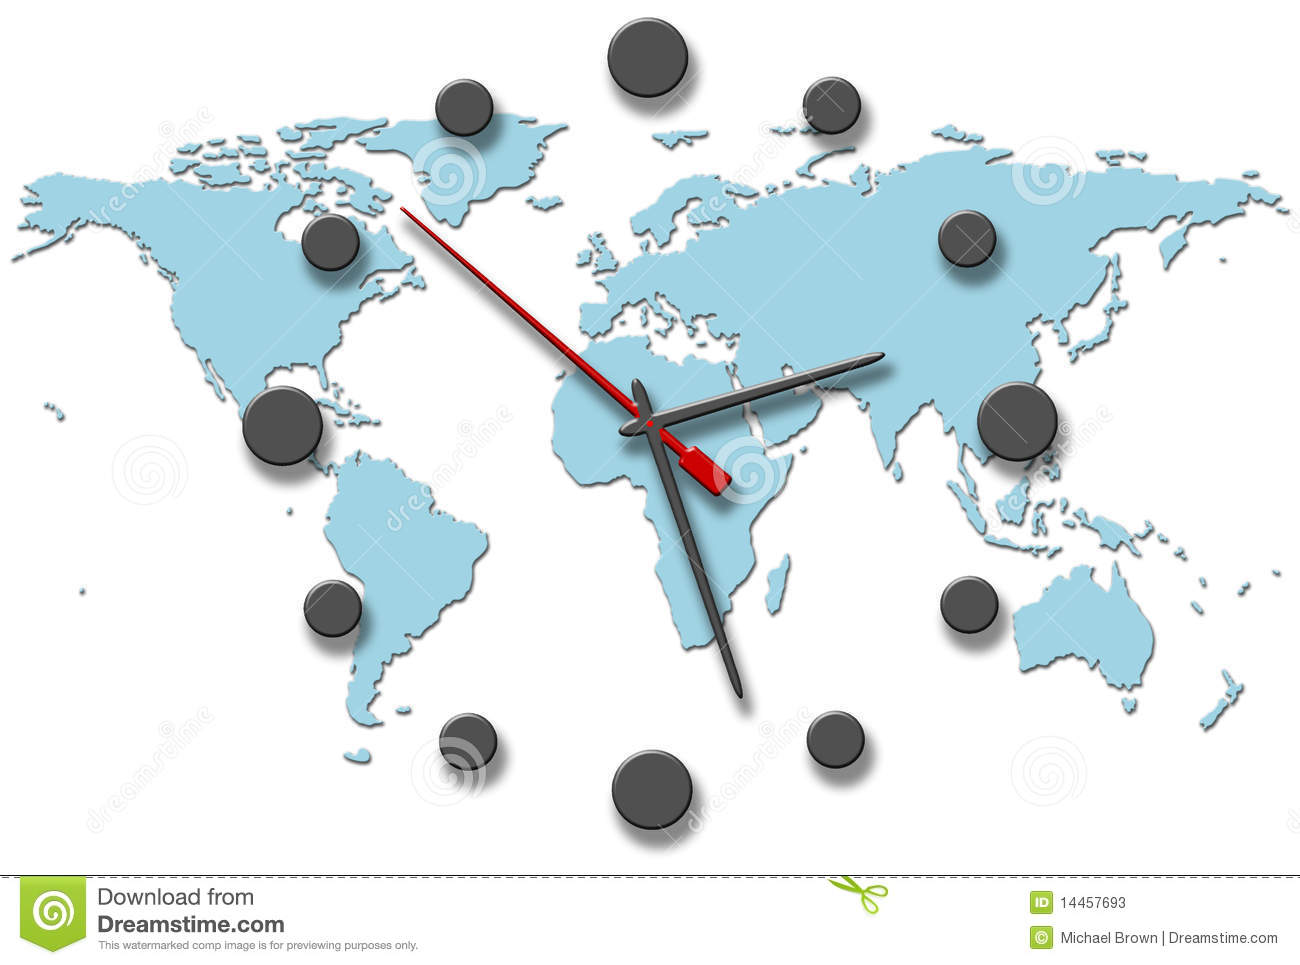 Earth time clock hands on world map stock illustration earth time clock hands on world map gumiabroncs Image collections